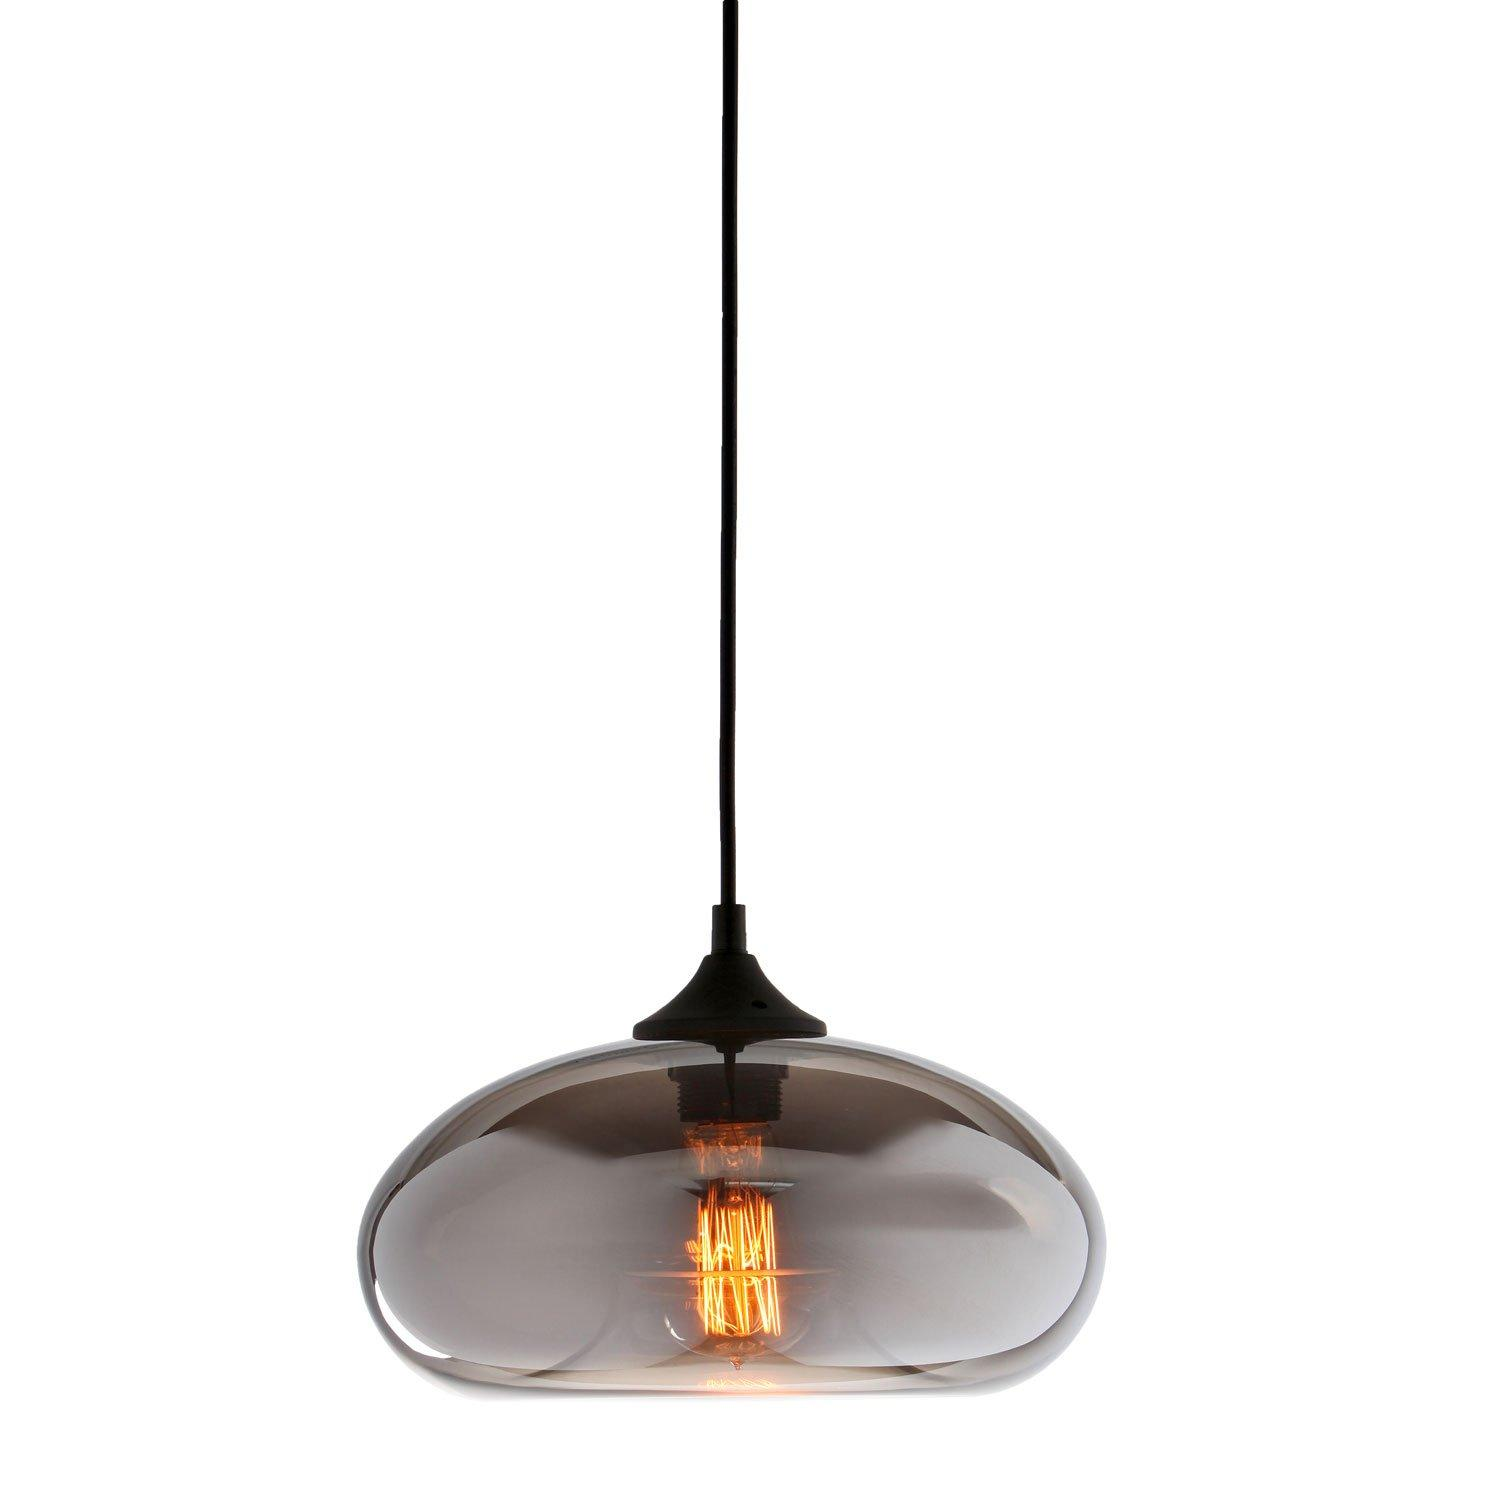 Clear Glass Shade Industrial Hanging Lamp 1-Light Pendant Lamp with 1 Vintage Edison Style Bulb, Sphere Shape Ceiling Fixture